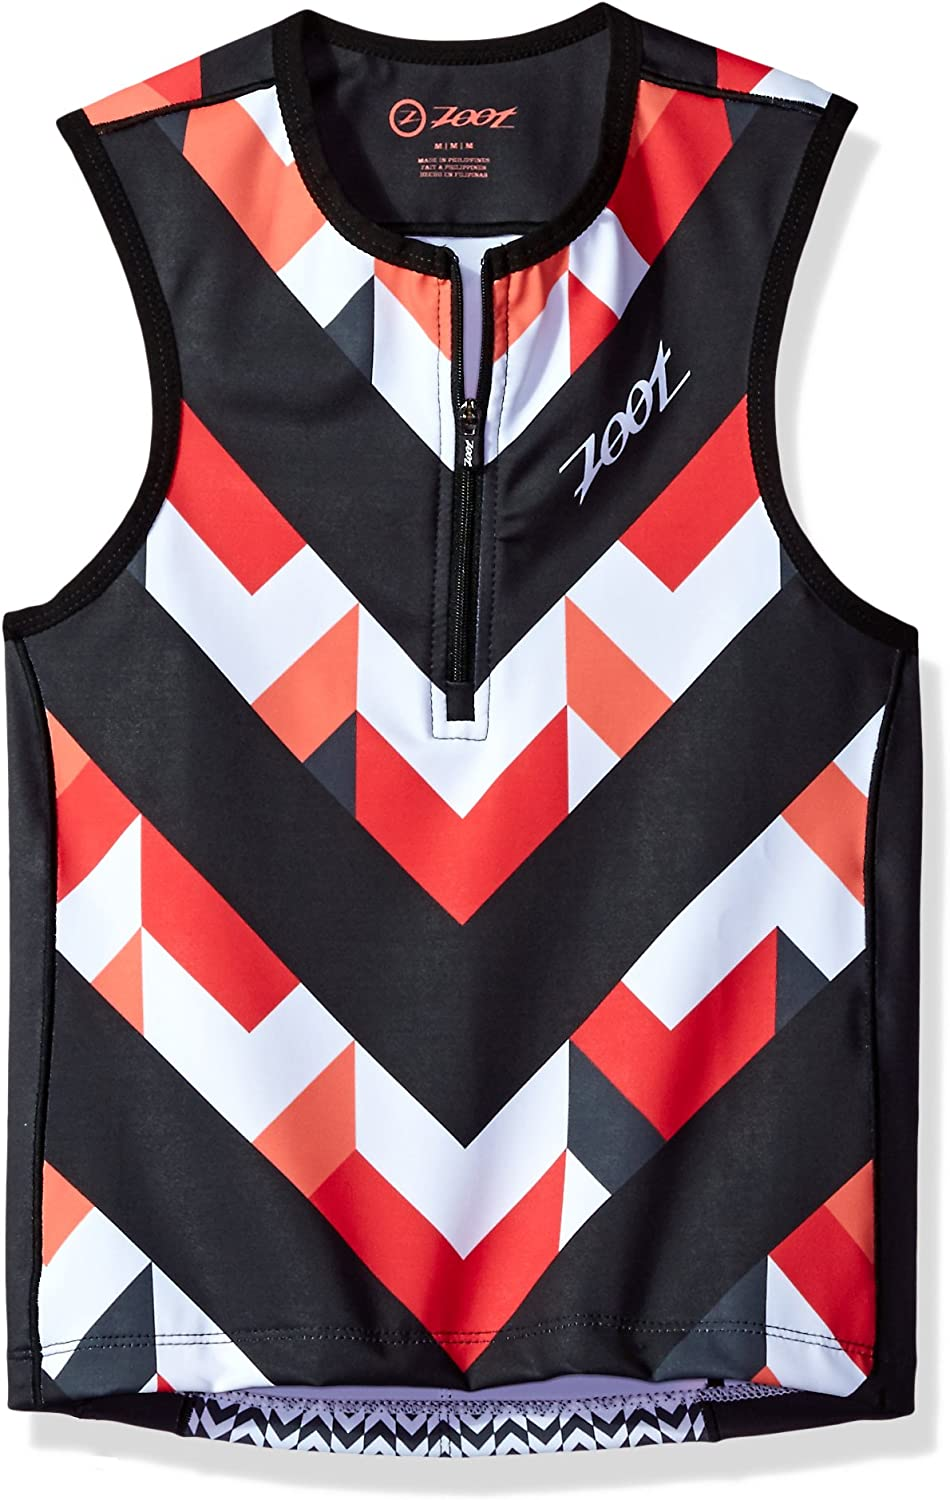 Zoot free Sports Fixed price for sale Unisex Top Tri Protege